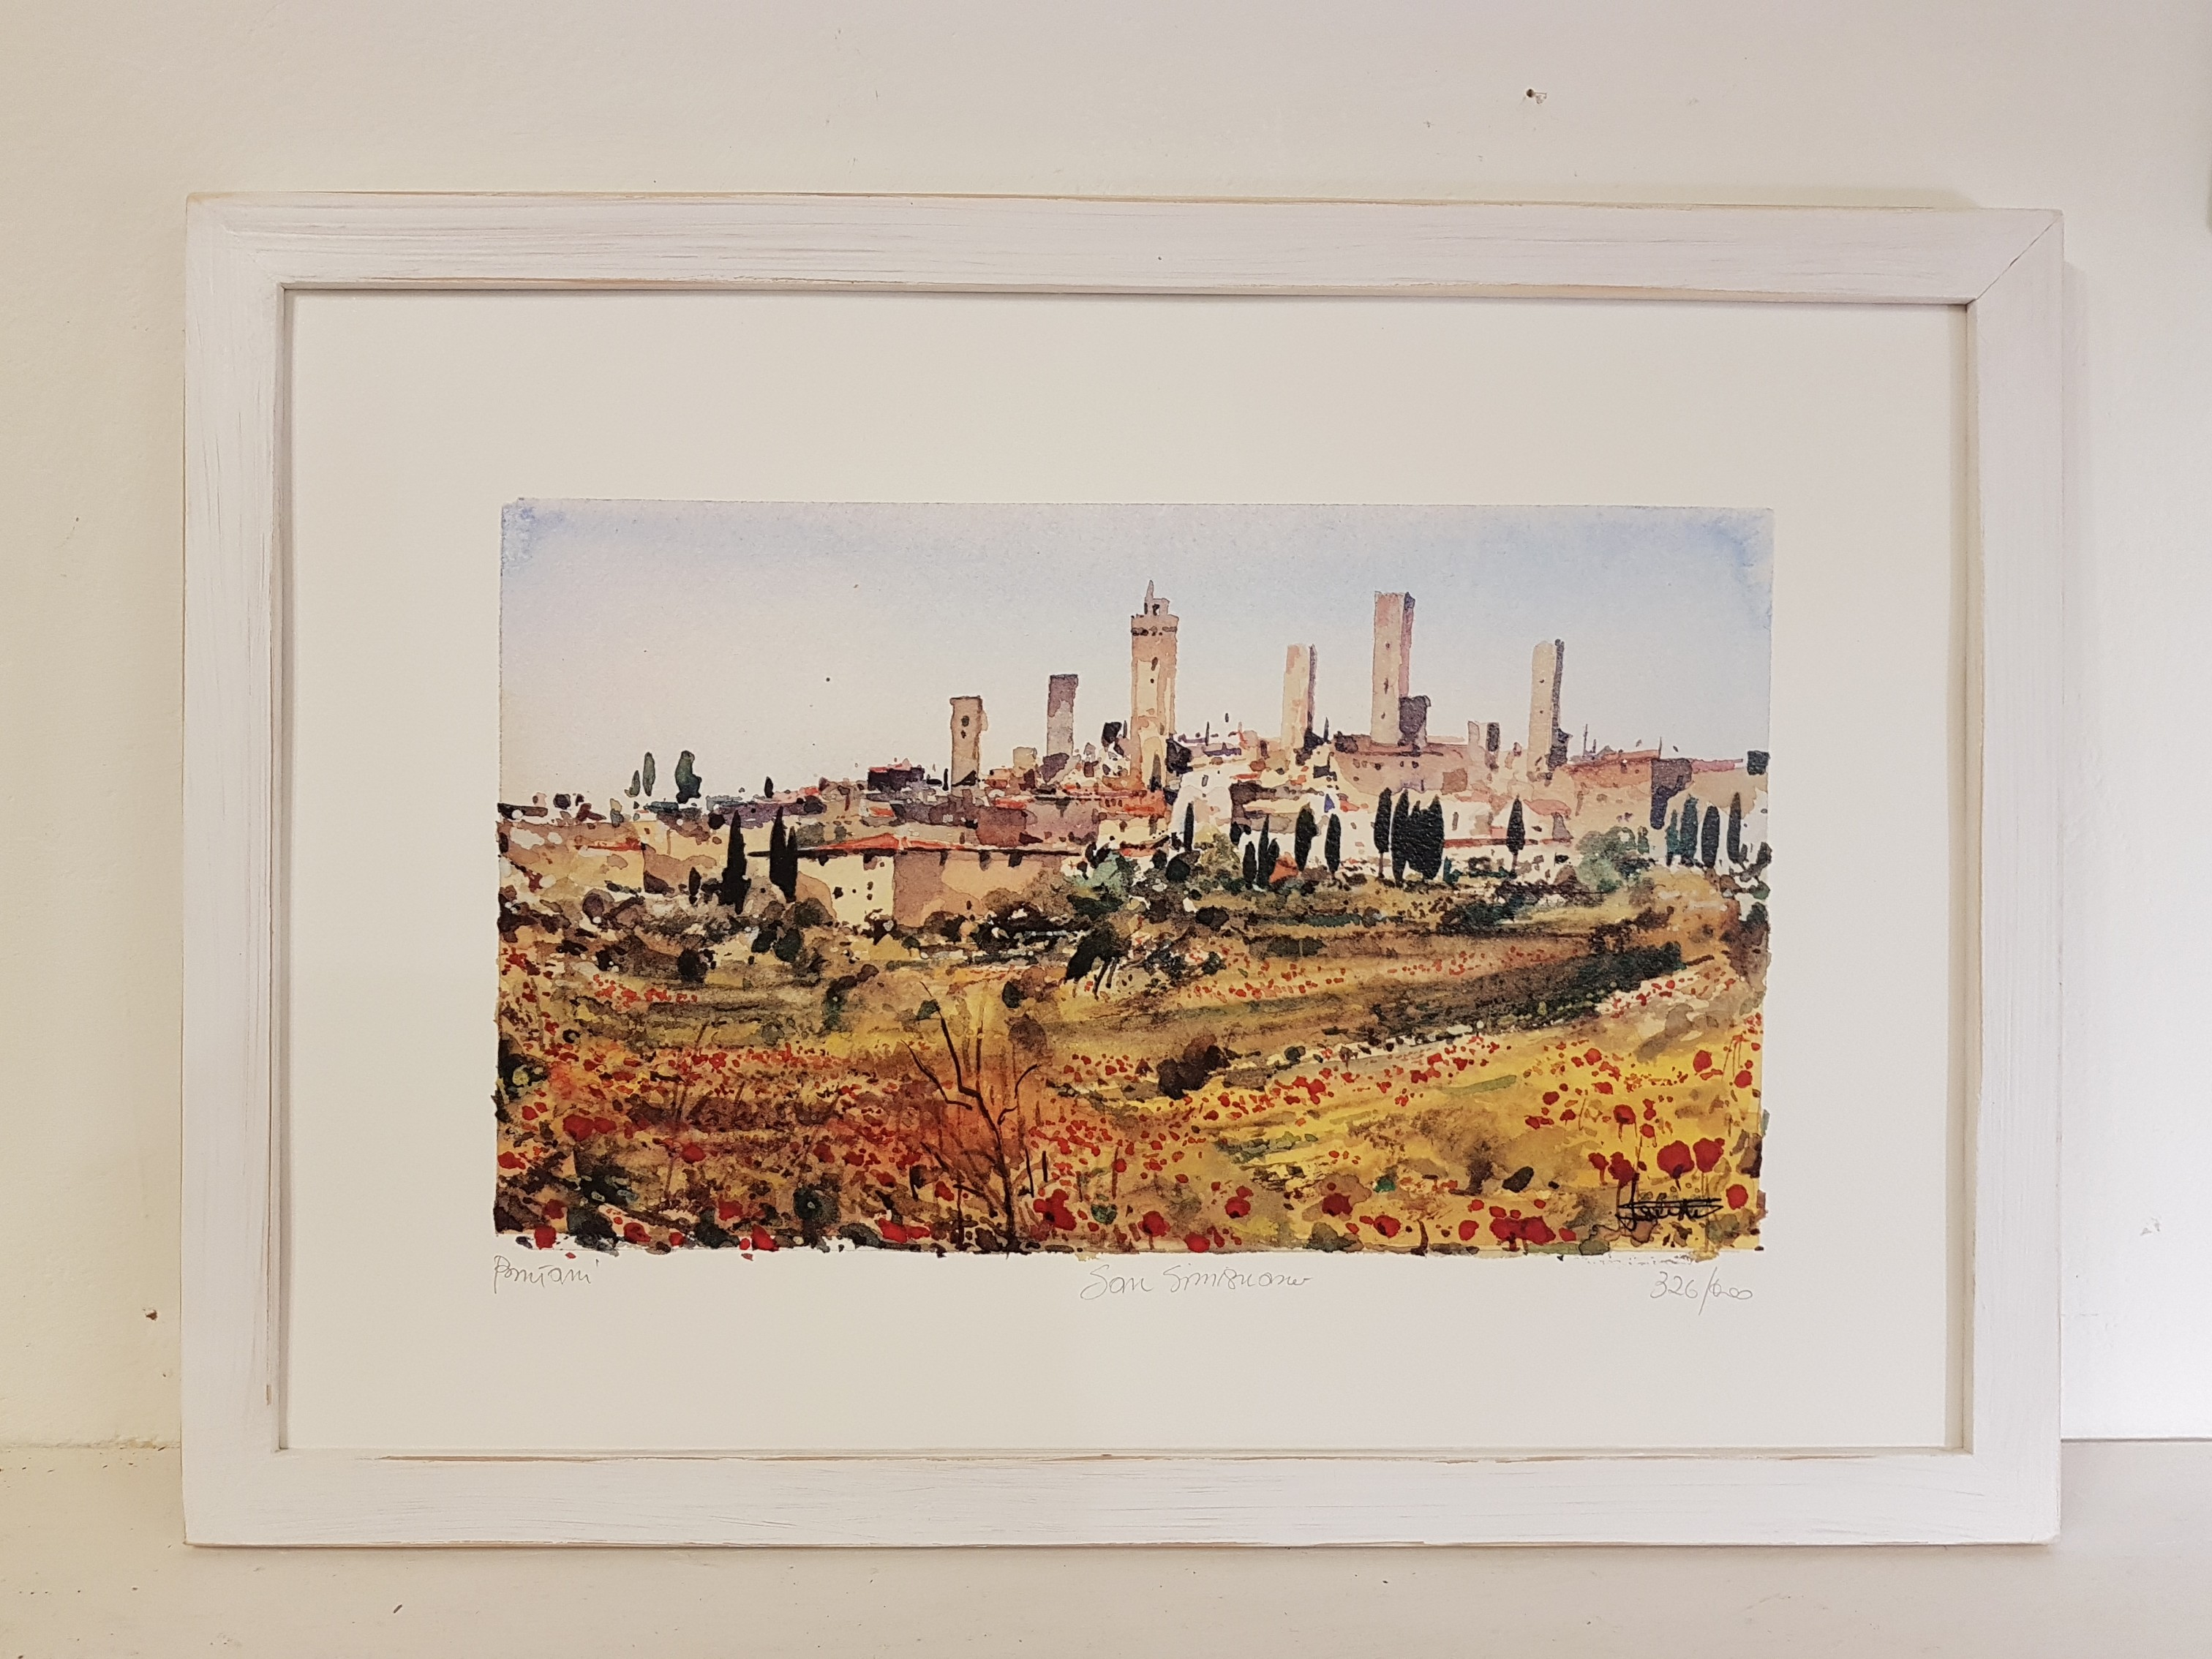 Sangimignano con papaveri con cornice - San Gimignano with poppies with frame